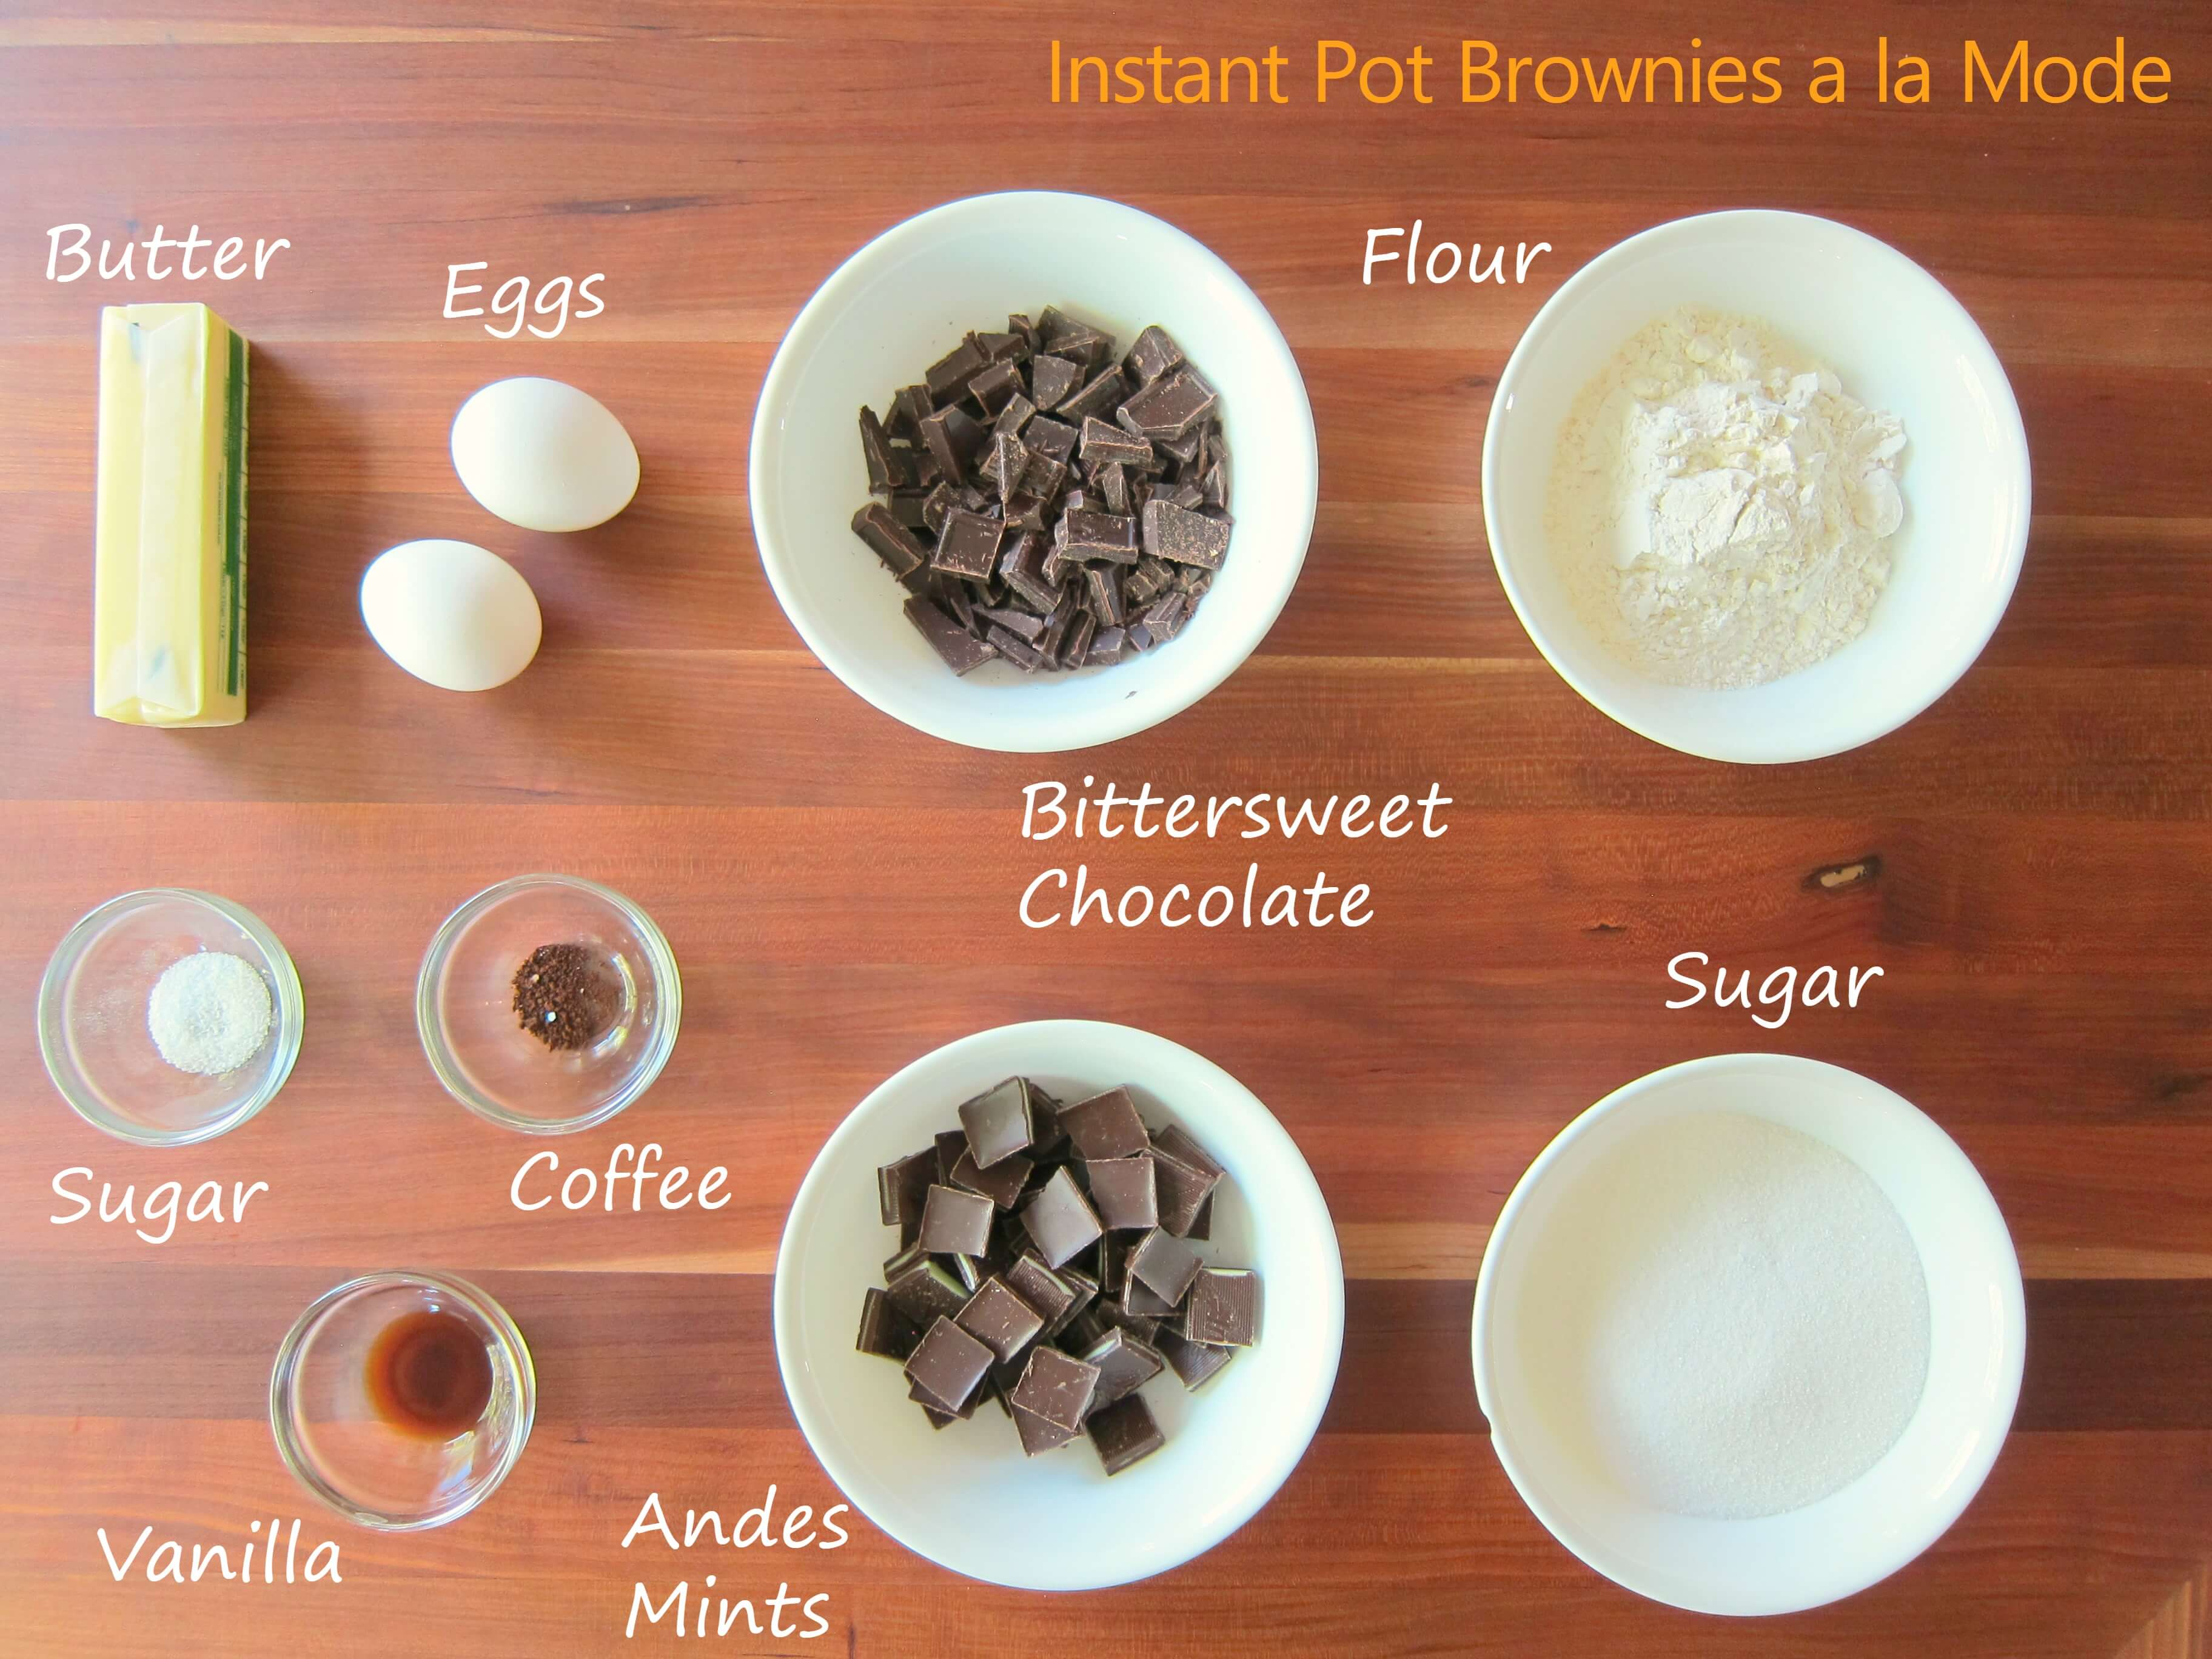 Instant Pot Brownies a la Mode Ingredients - butter, egg, bittersweet chocolate, flour, sugar, coffee, vanilla, andes mints, sugar